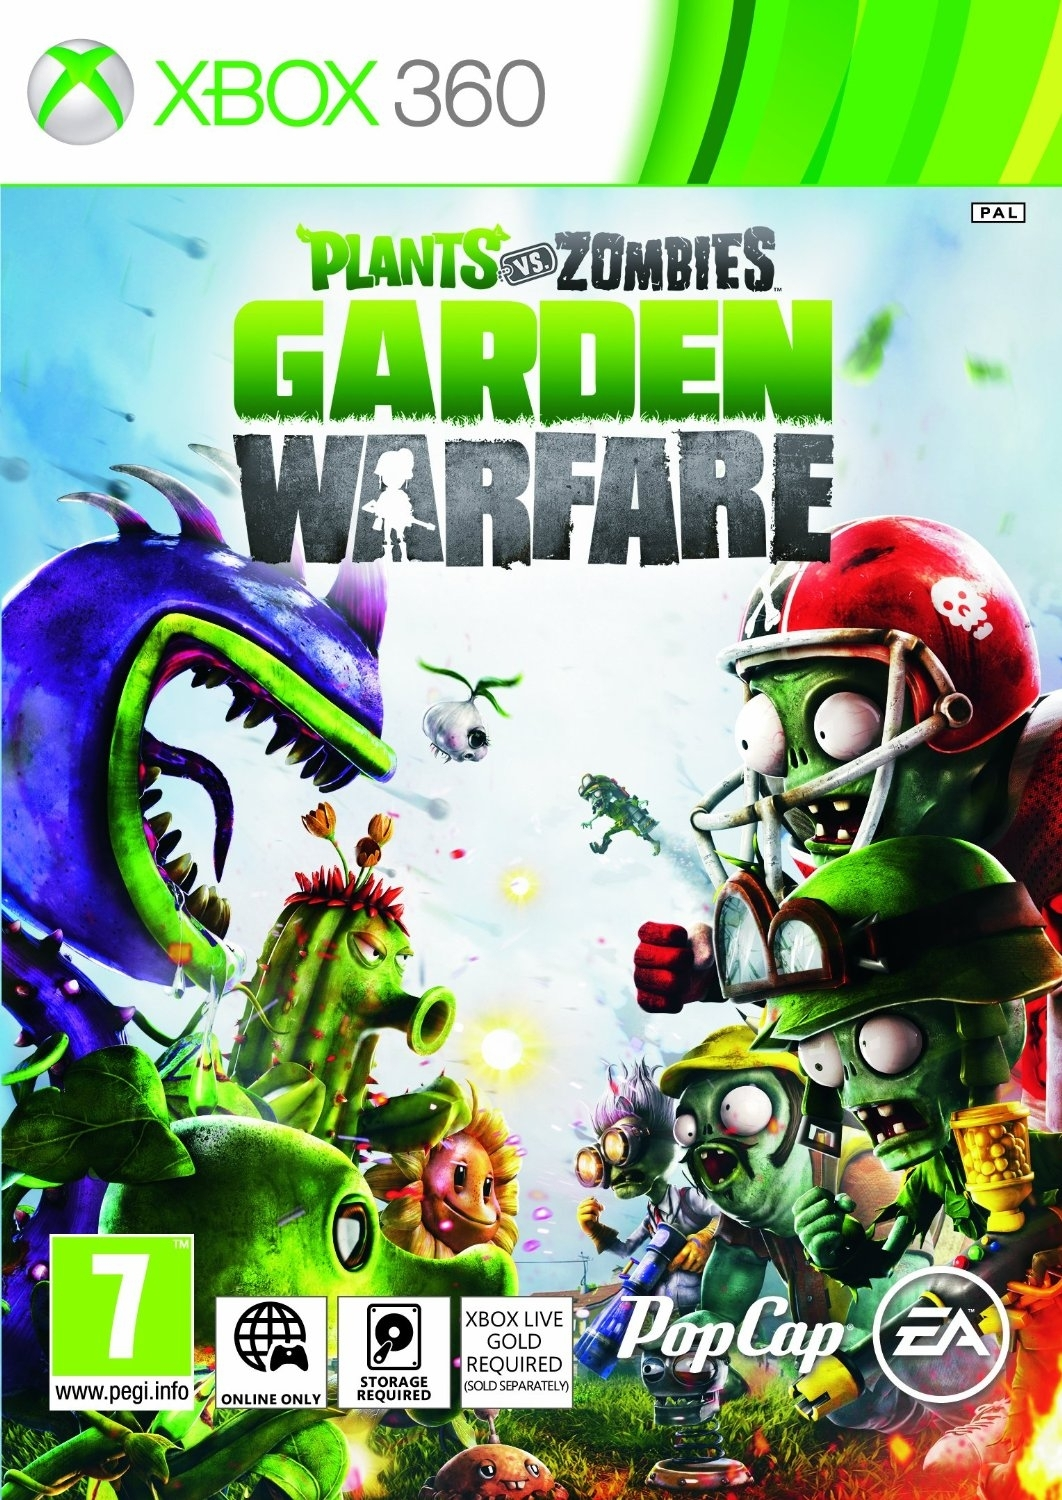 Plants Vs Zombies Garden Warfare (Xbox 360)